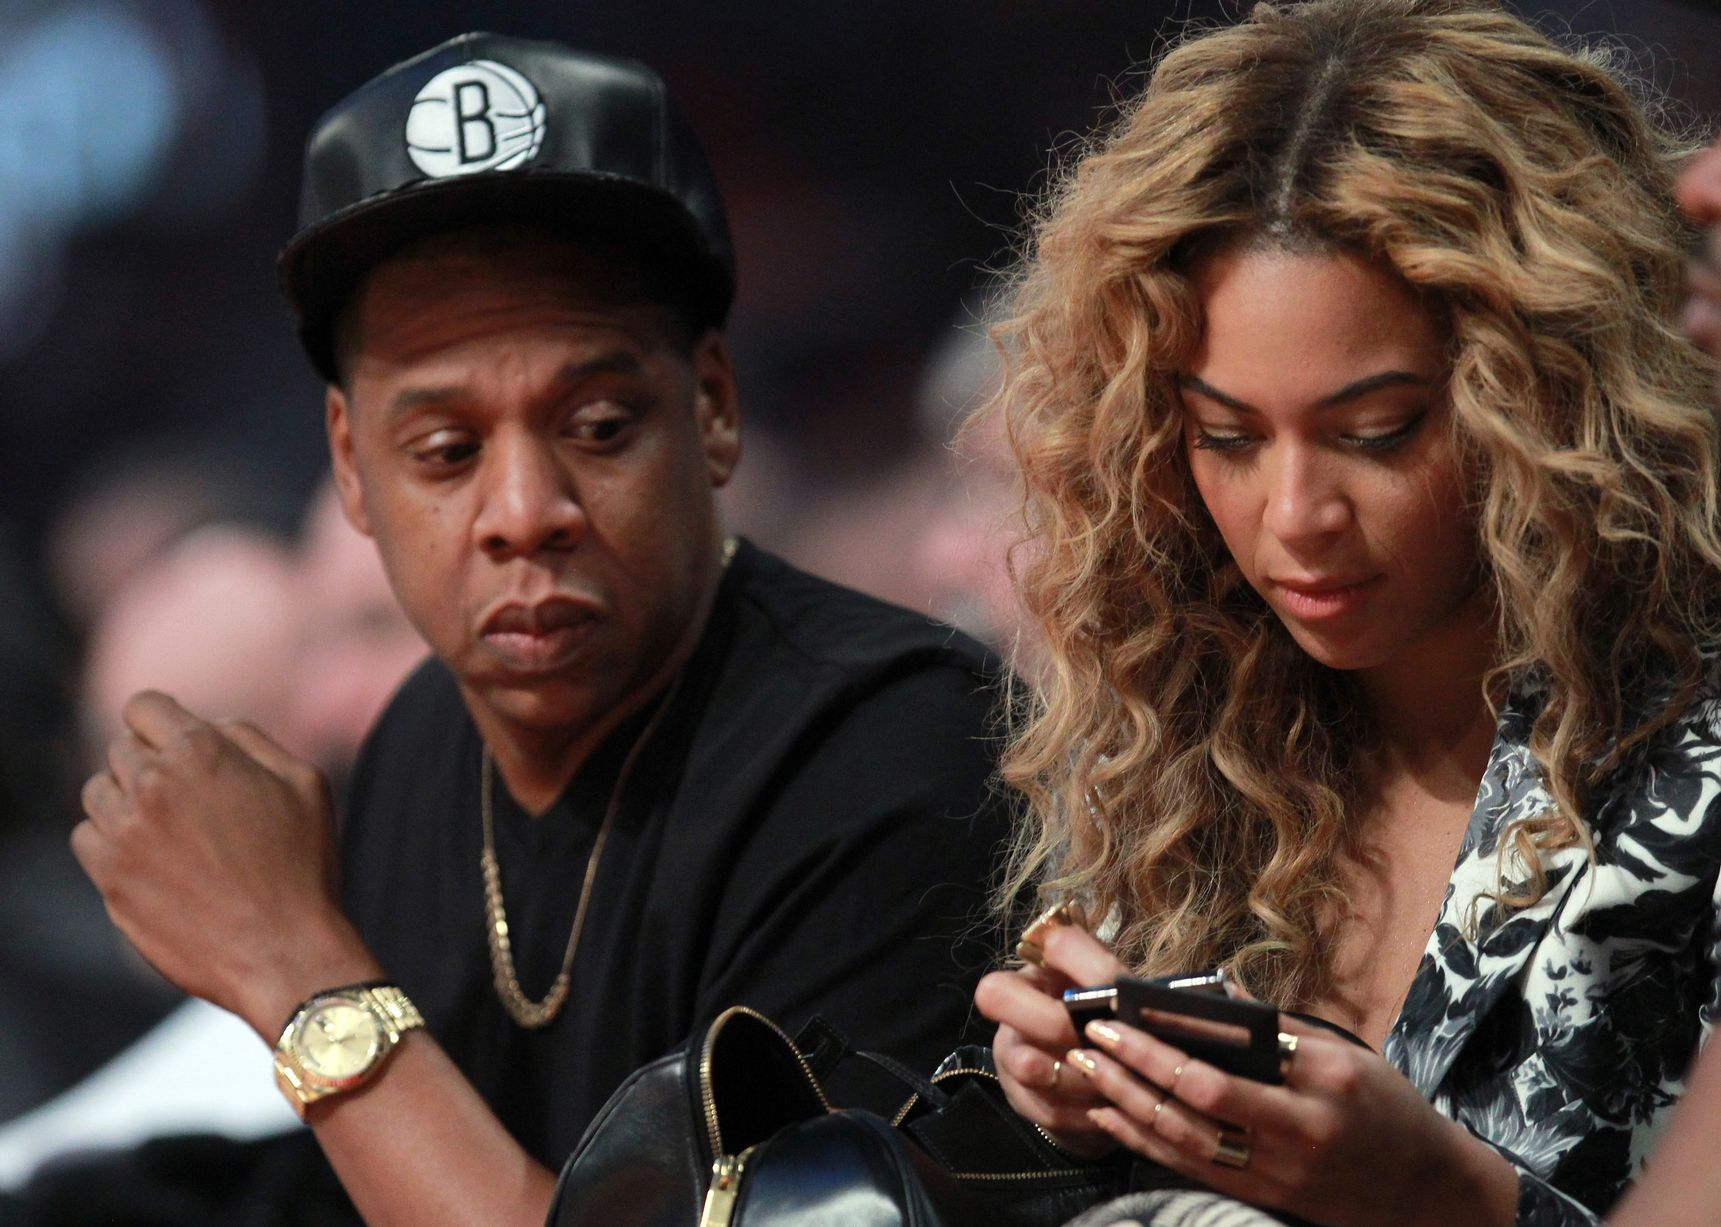 Jay-Z-looks-over-at-wife-Beyonce-during-the-2013-NBA-All-Star-game.jpg